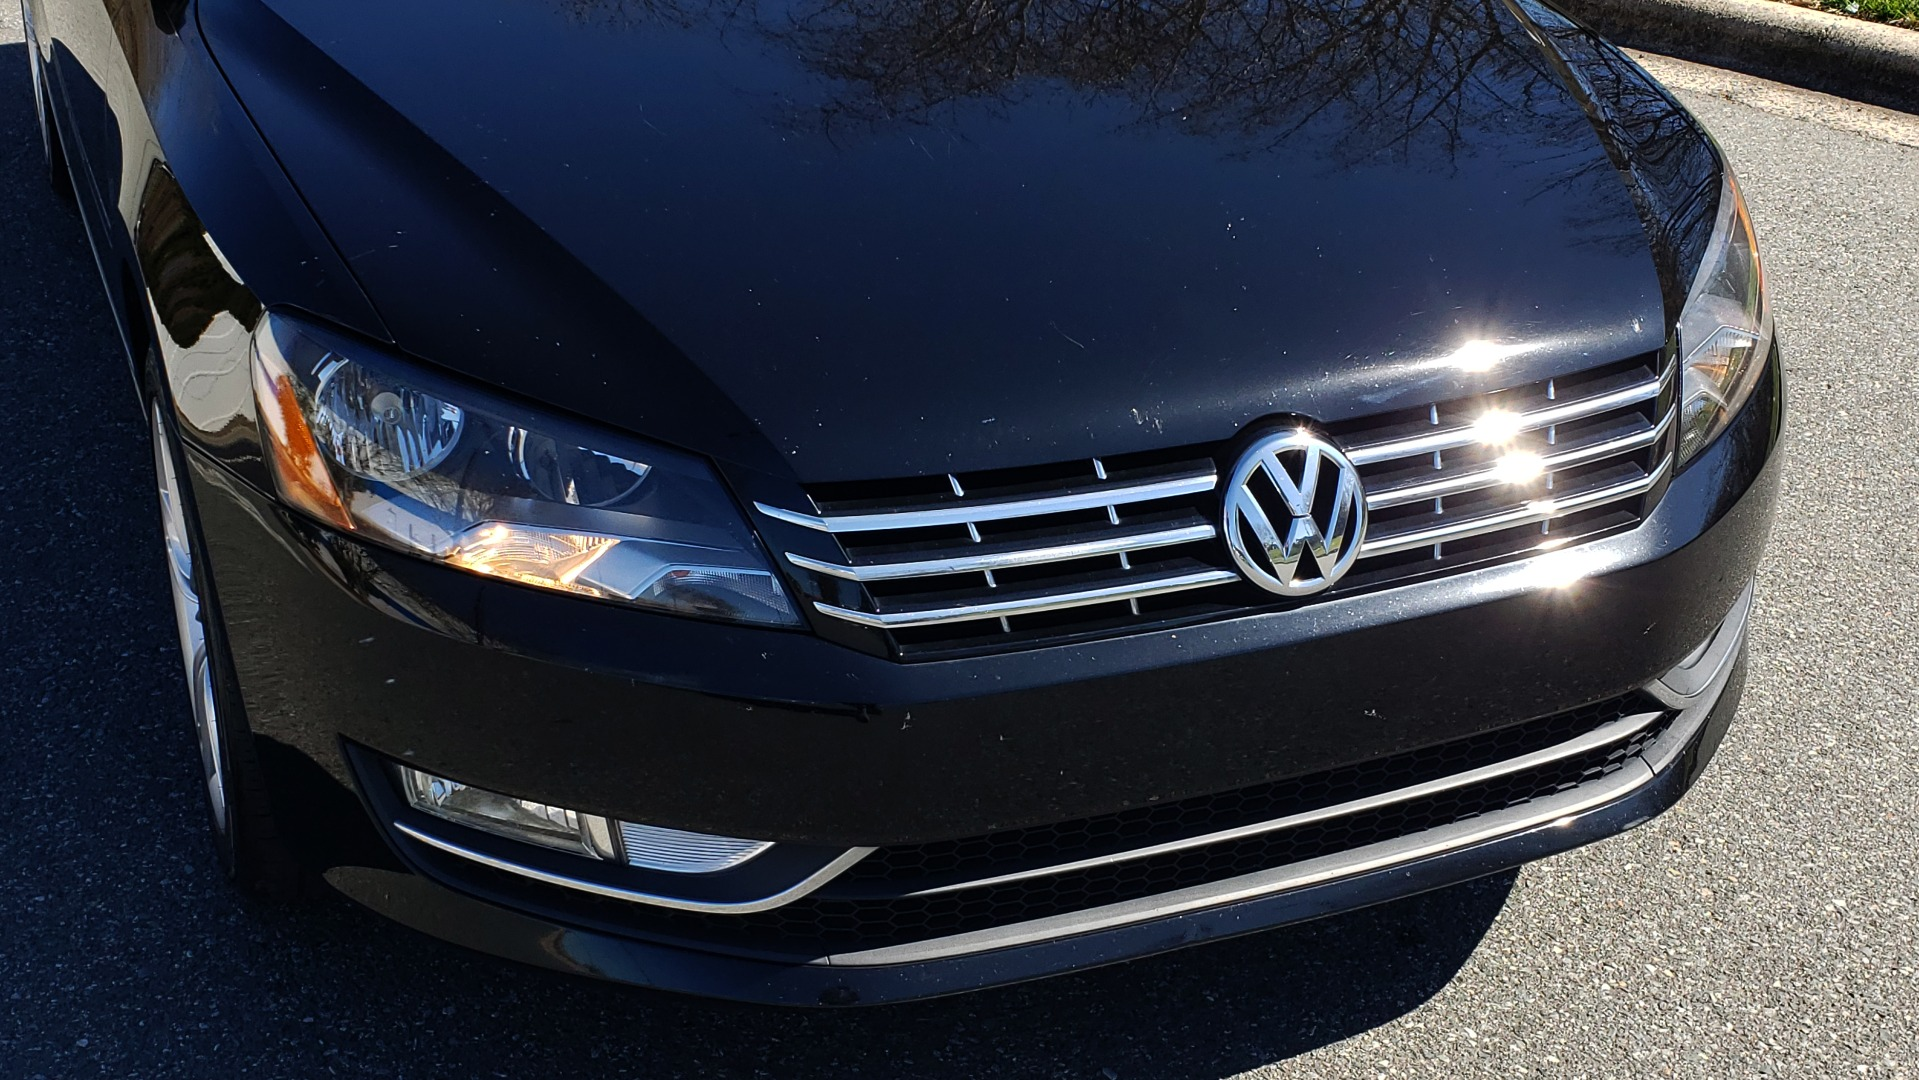 Used 2014 Volkswagen PASSAT SEL PREMIUM / NAV / SUNROOF / REARVIEW / 6-SPD AUTO for sale Sold at Formula Imports in Charlotte NC 28227 22